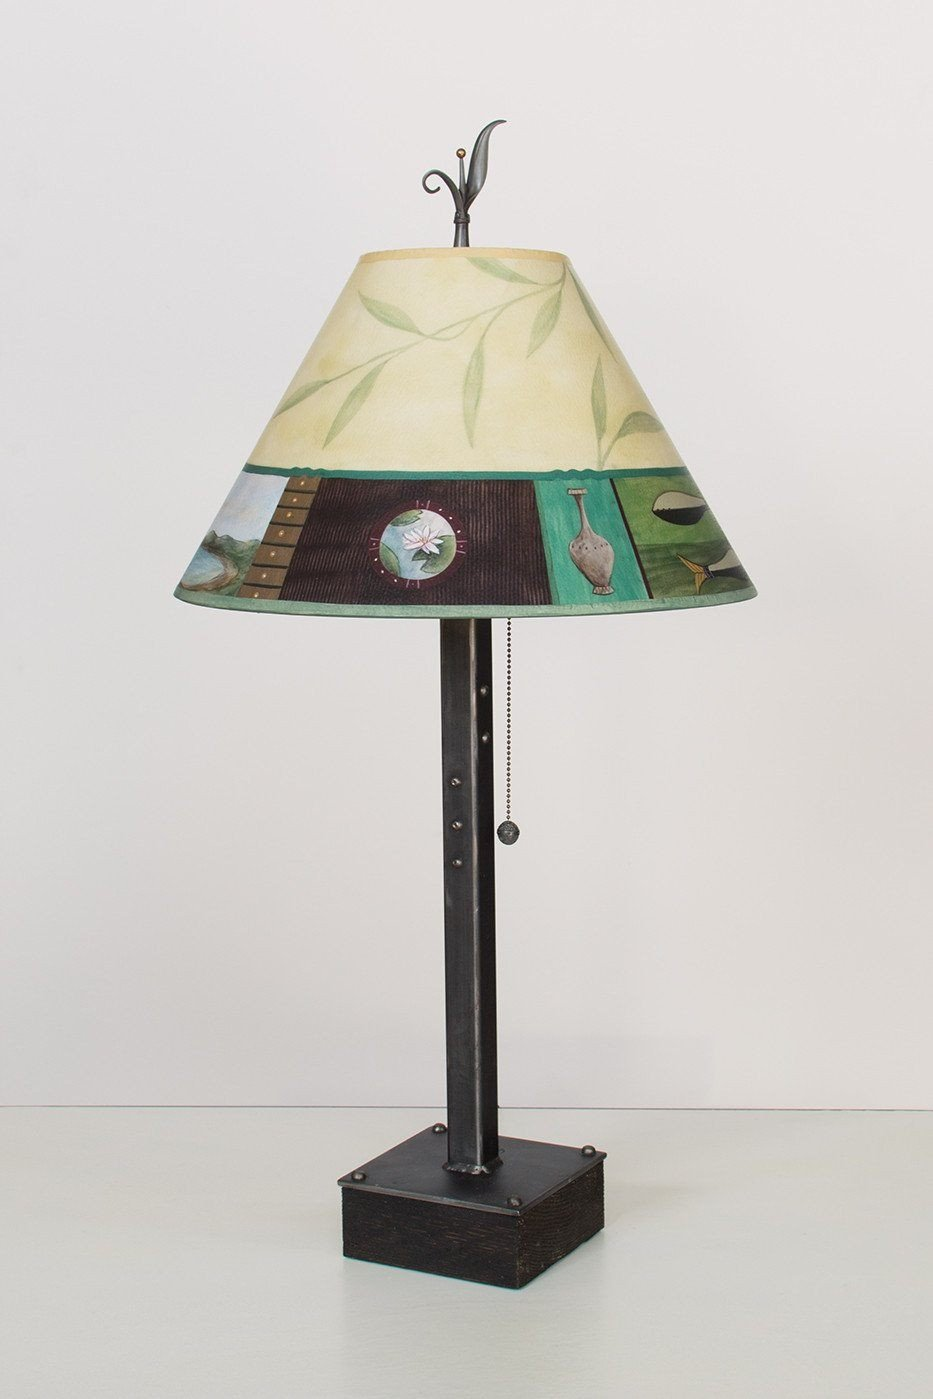 Steel Table Lamp on Wood with Medium Conical Shade in Twin Fish Lit